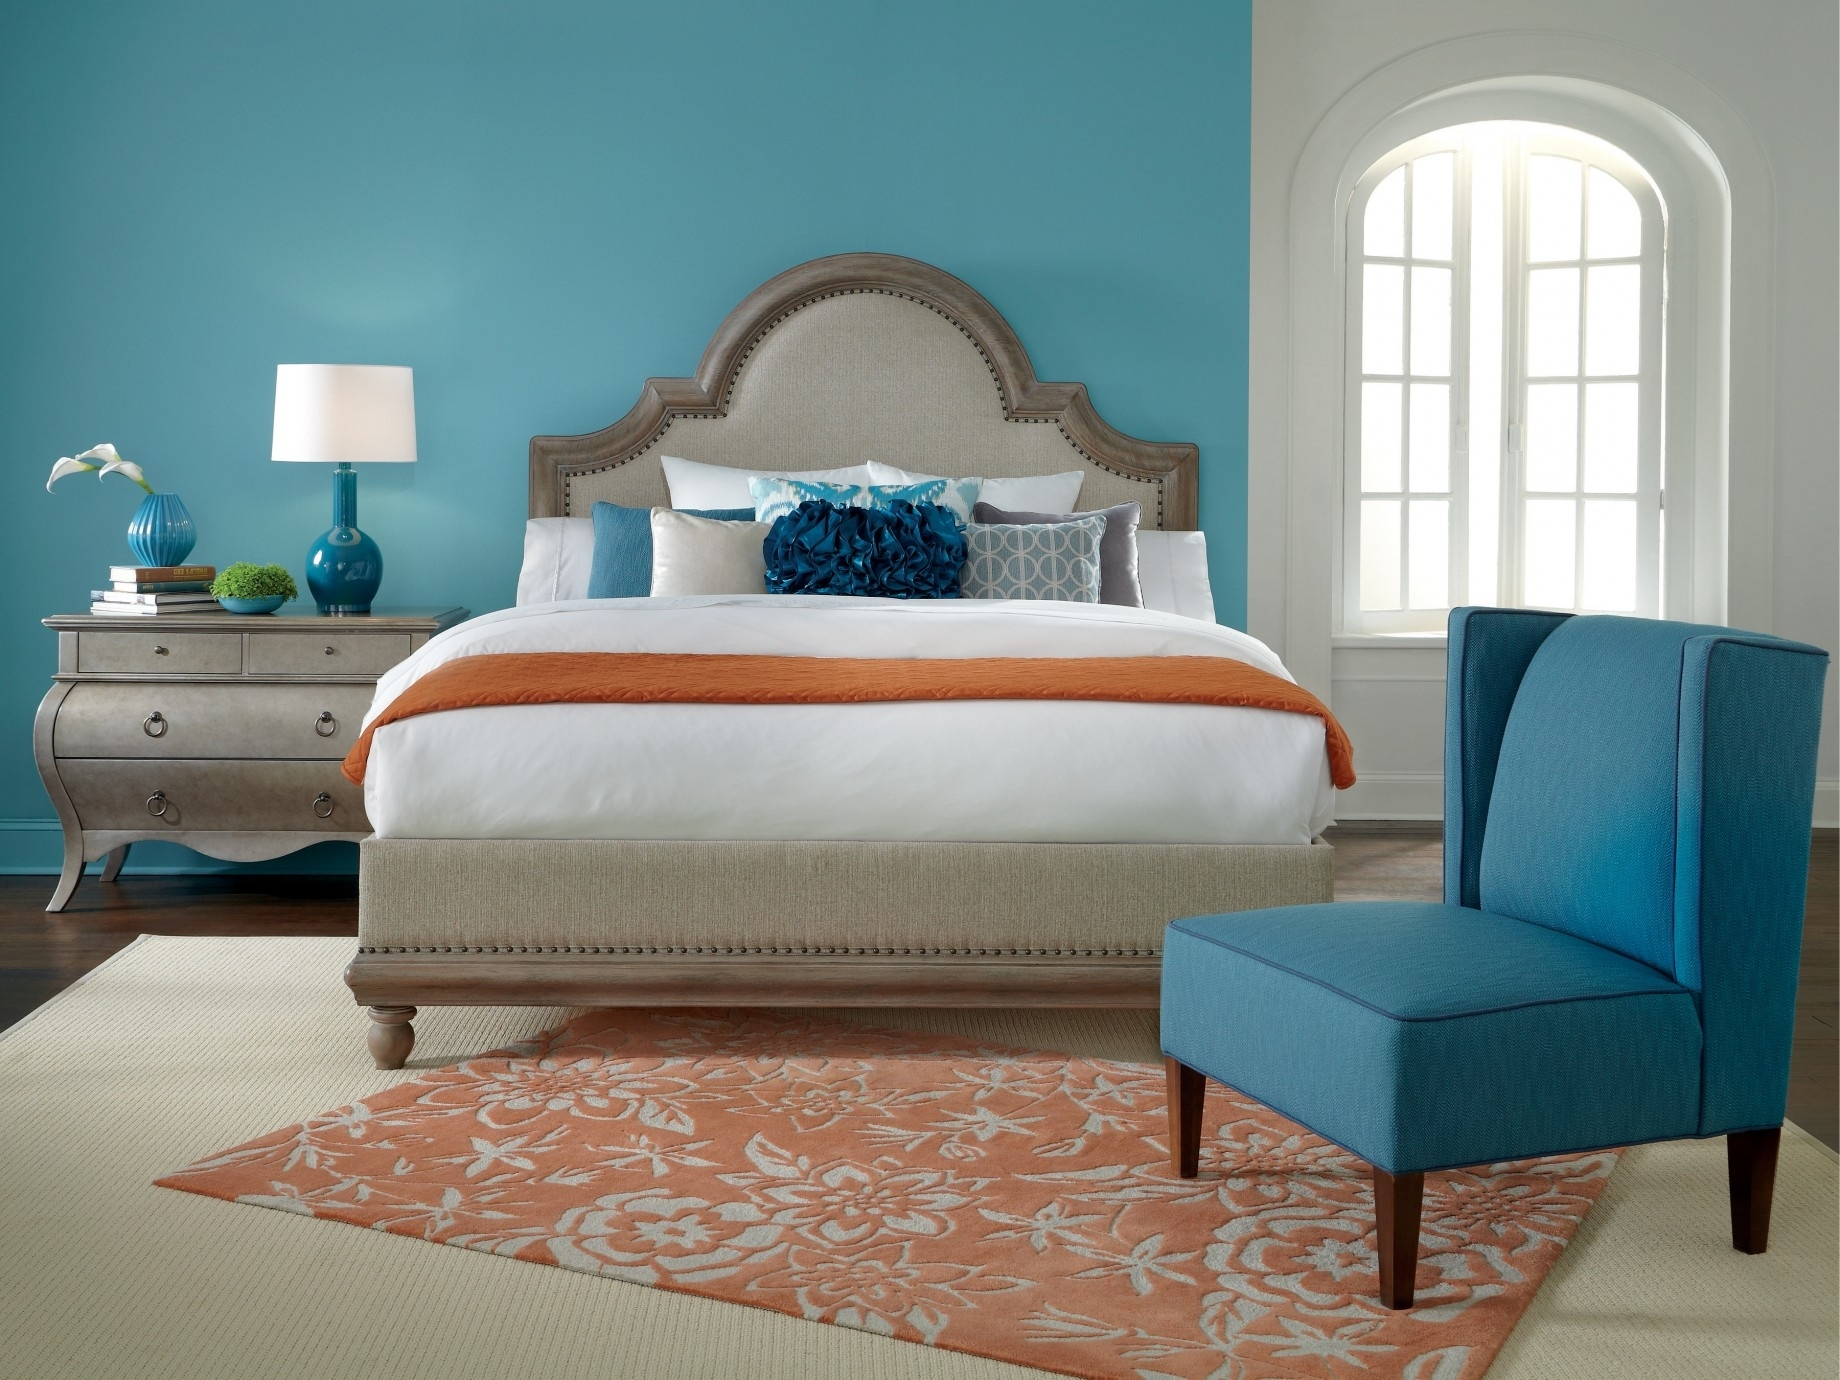 Bedroom Design: Feature Wall Paint Painting Accent Walls Accent Inside Current Wall Accents Color Combinations (View 4 of 15)